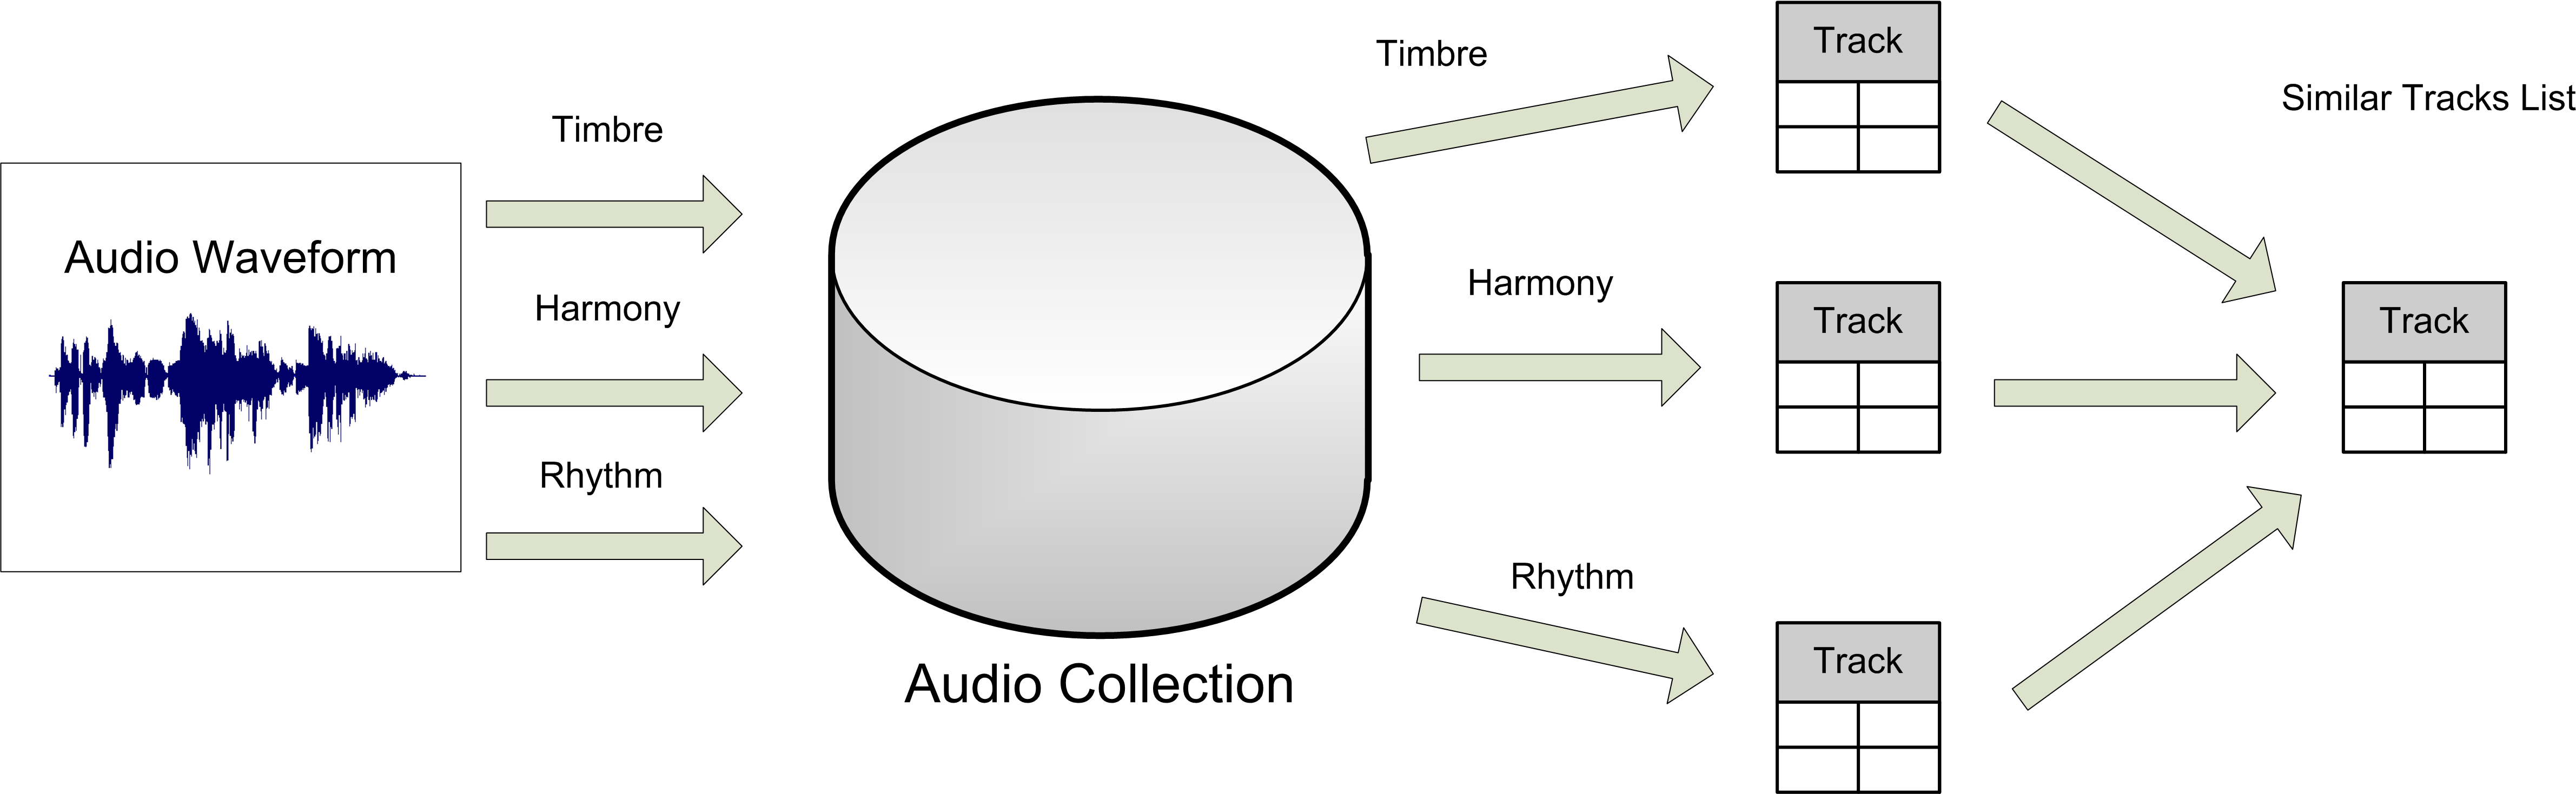 Audio content-based music similarity